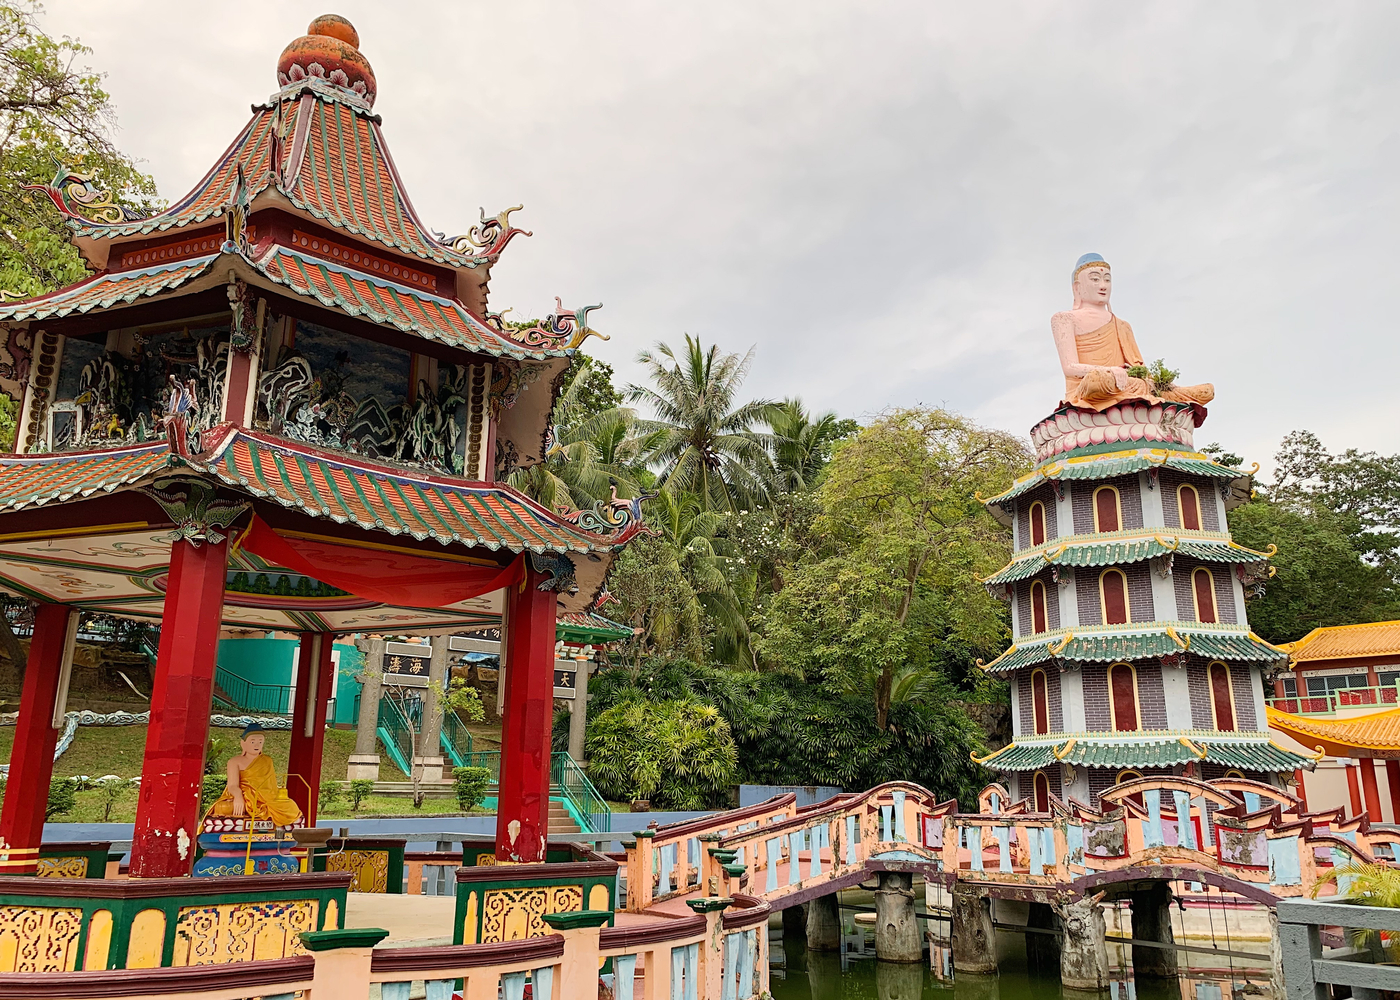 Haw Par Villa | The park evoked a sense of nostalgia.